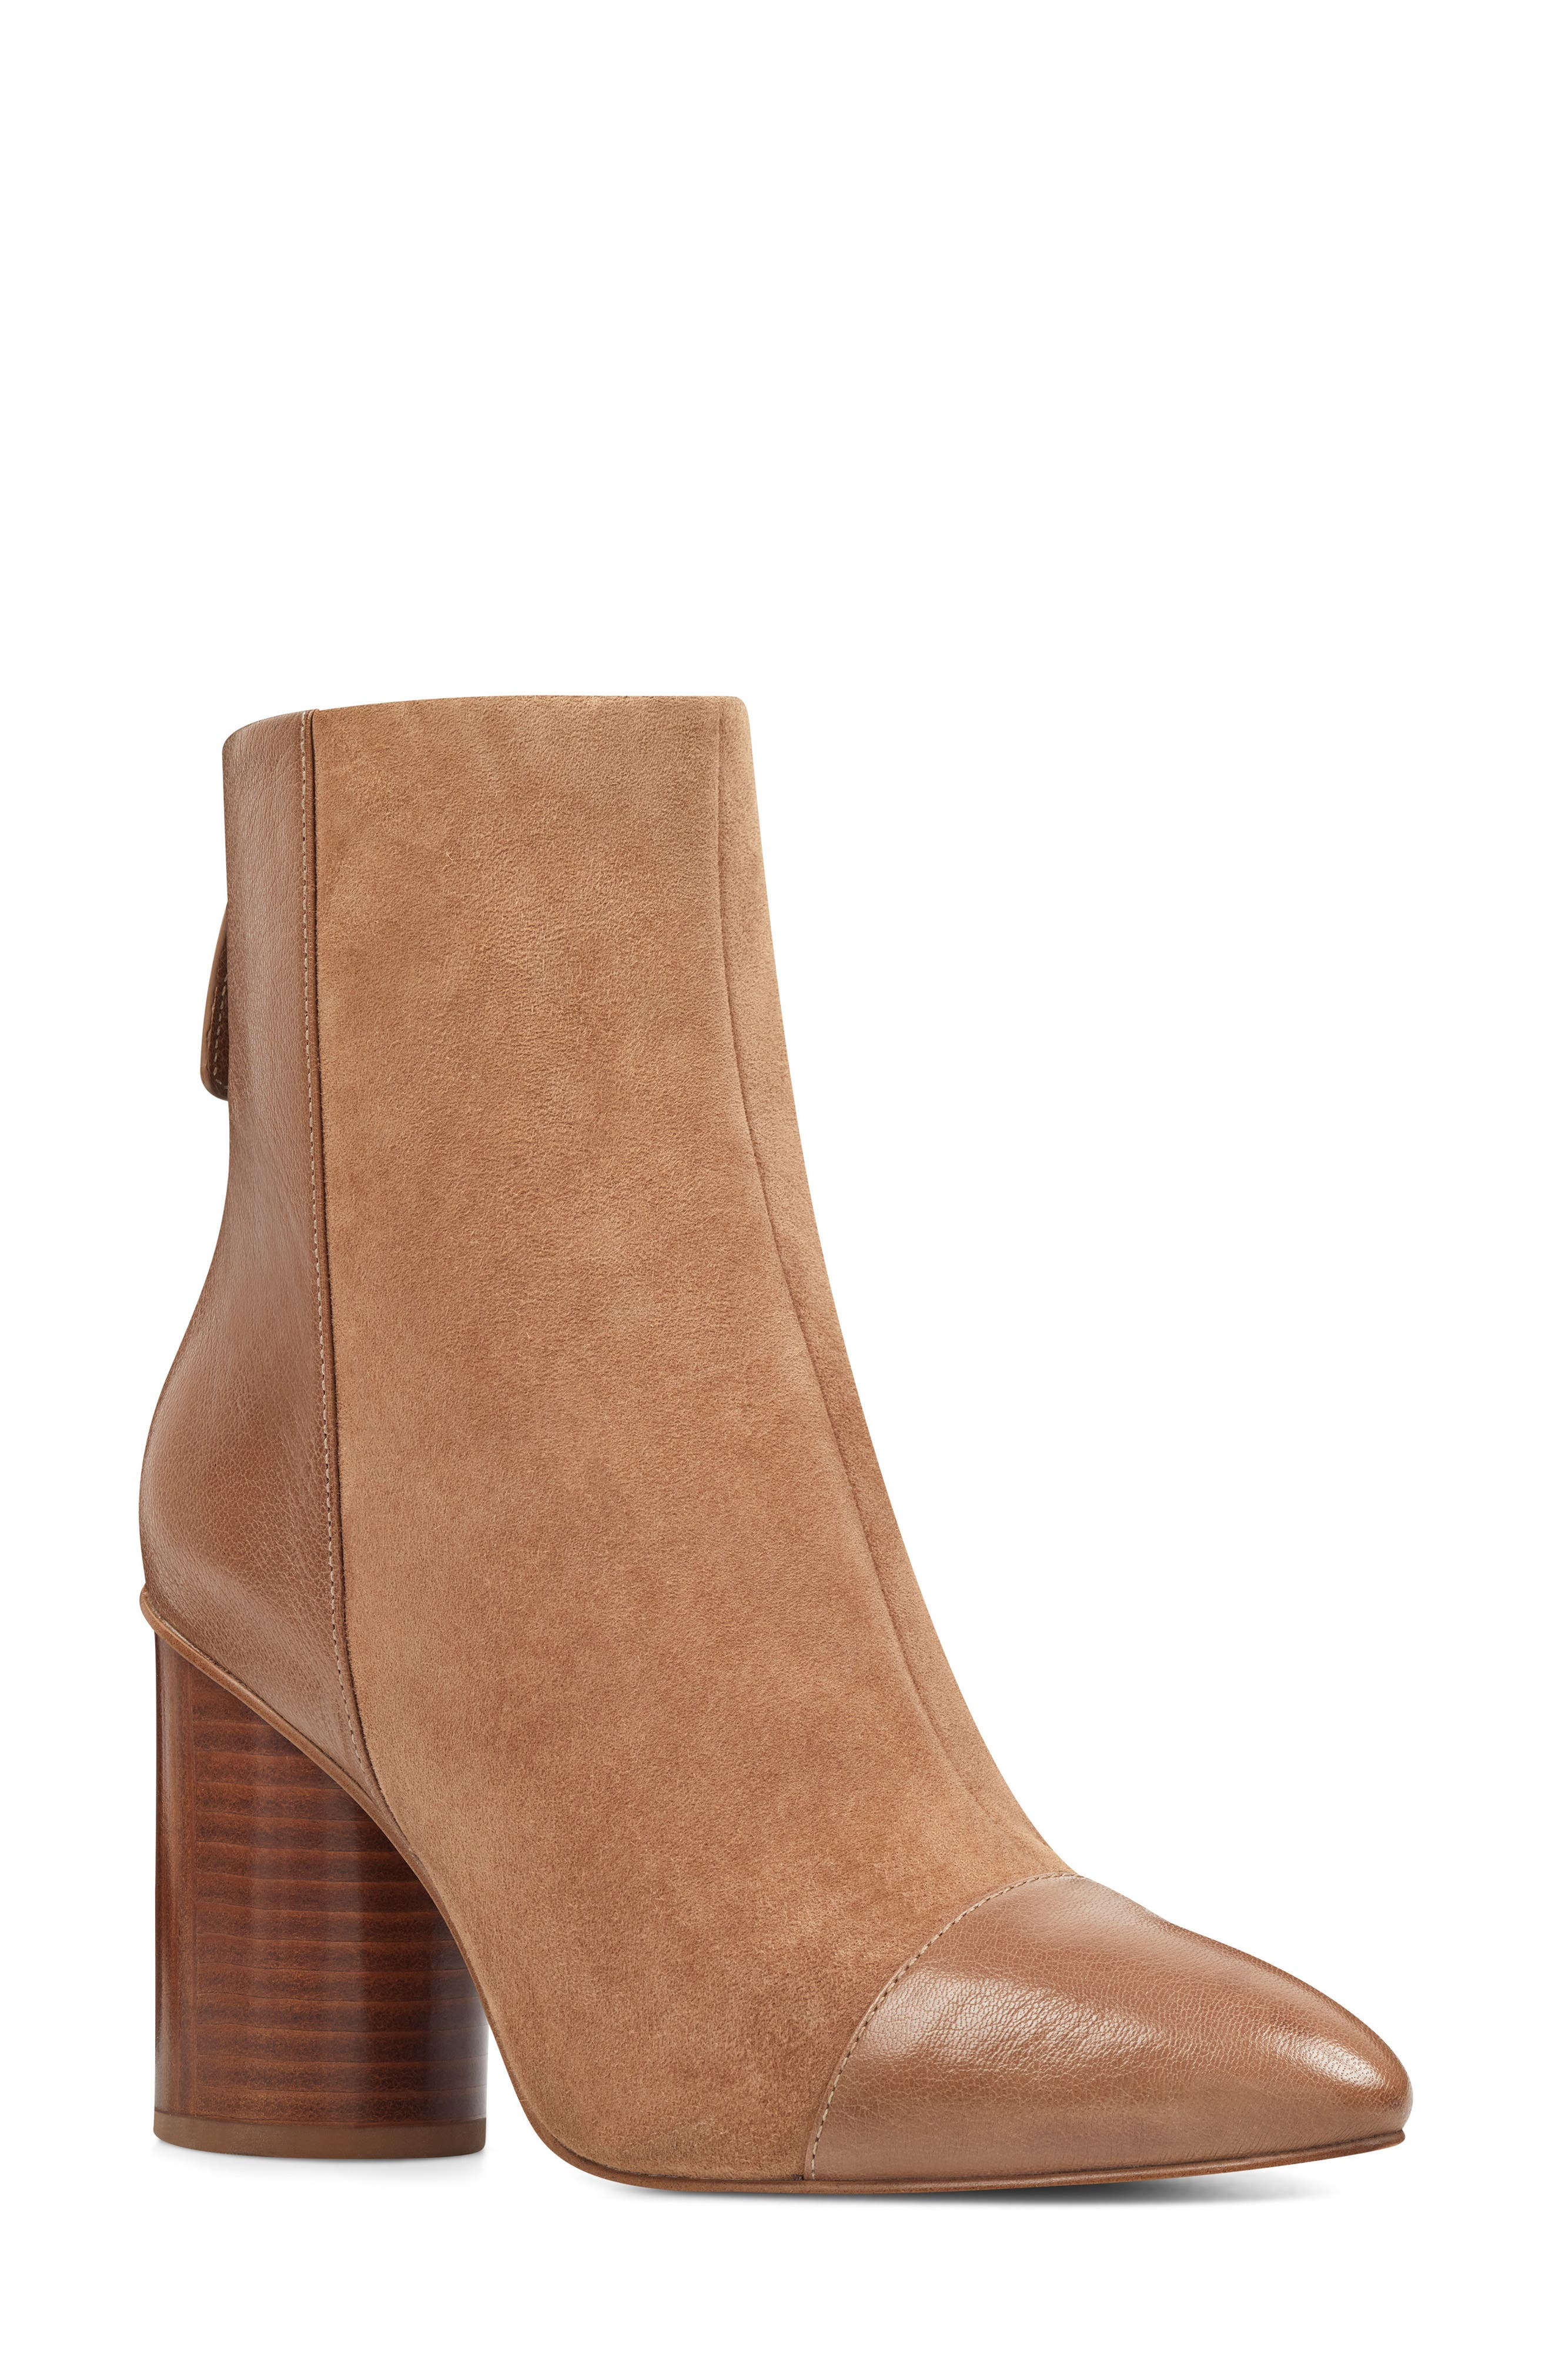 Nine West Cabrillo Cap Toe Bootie, Beige